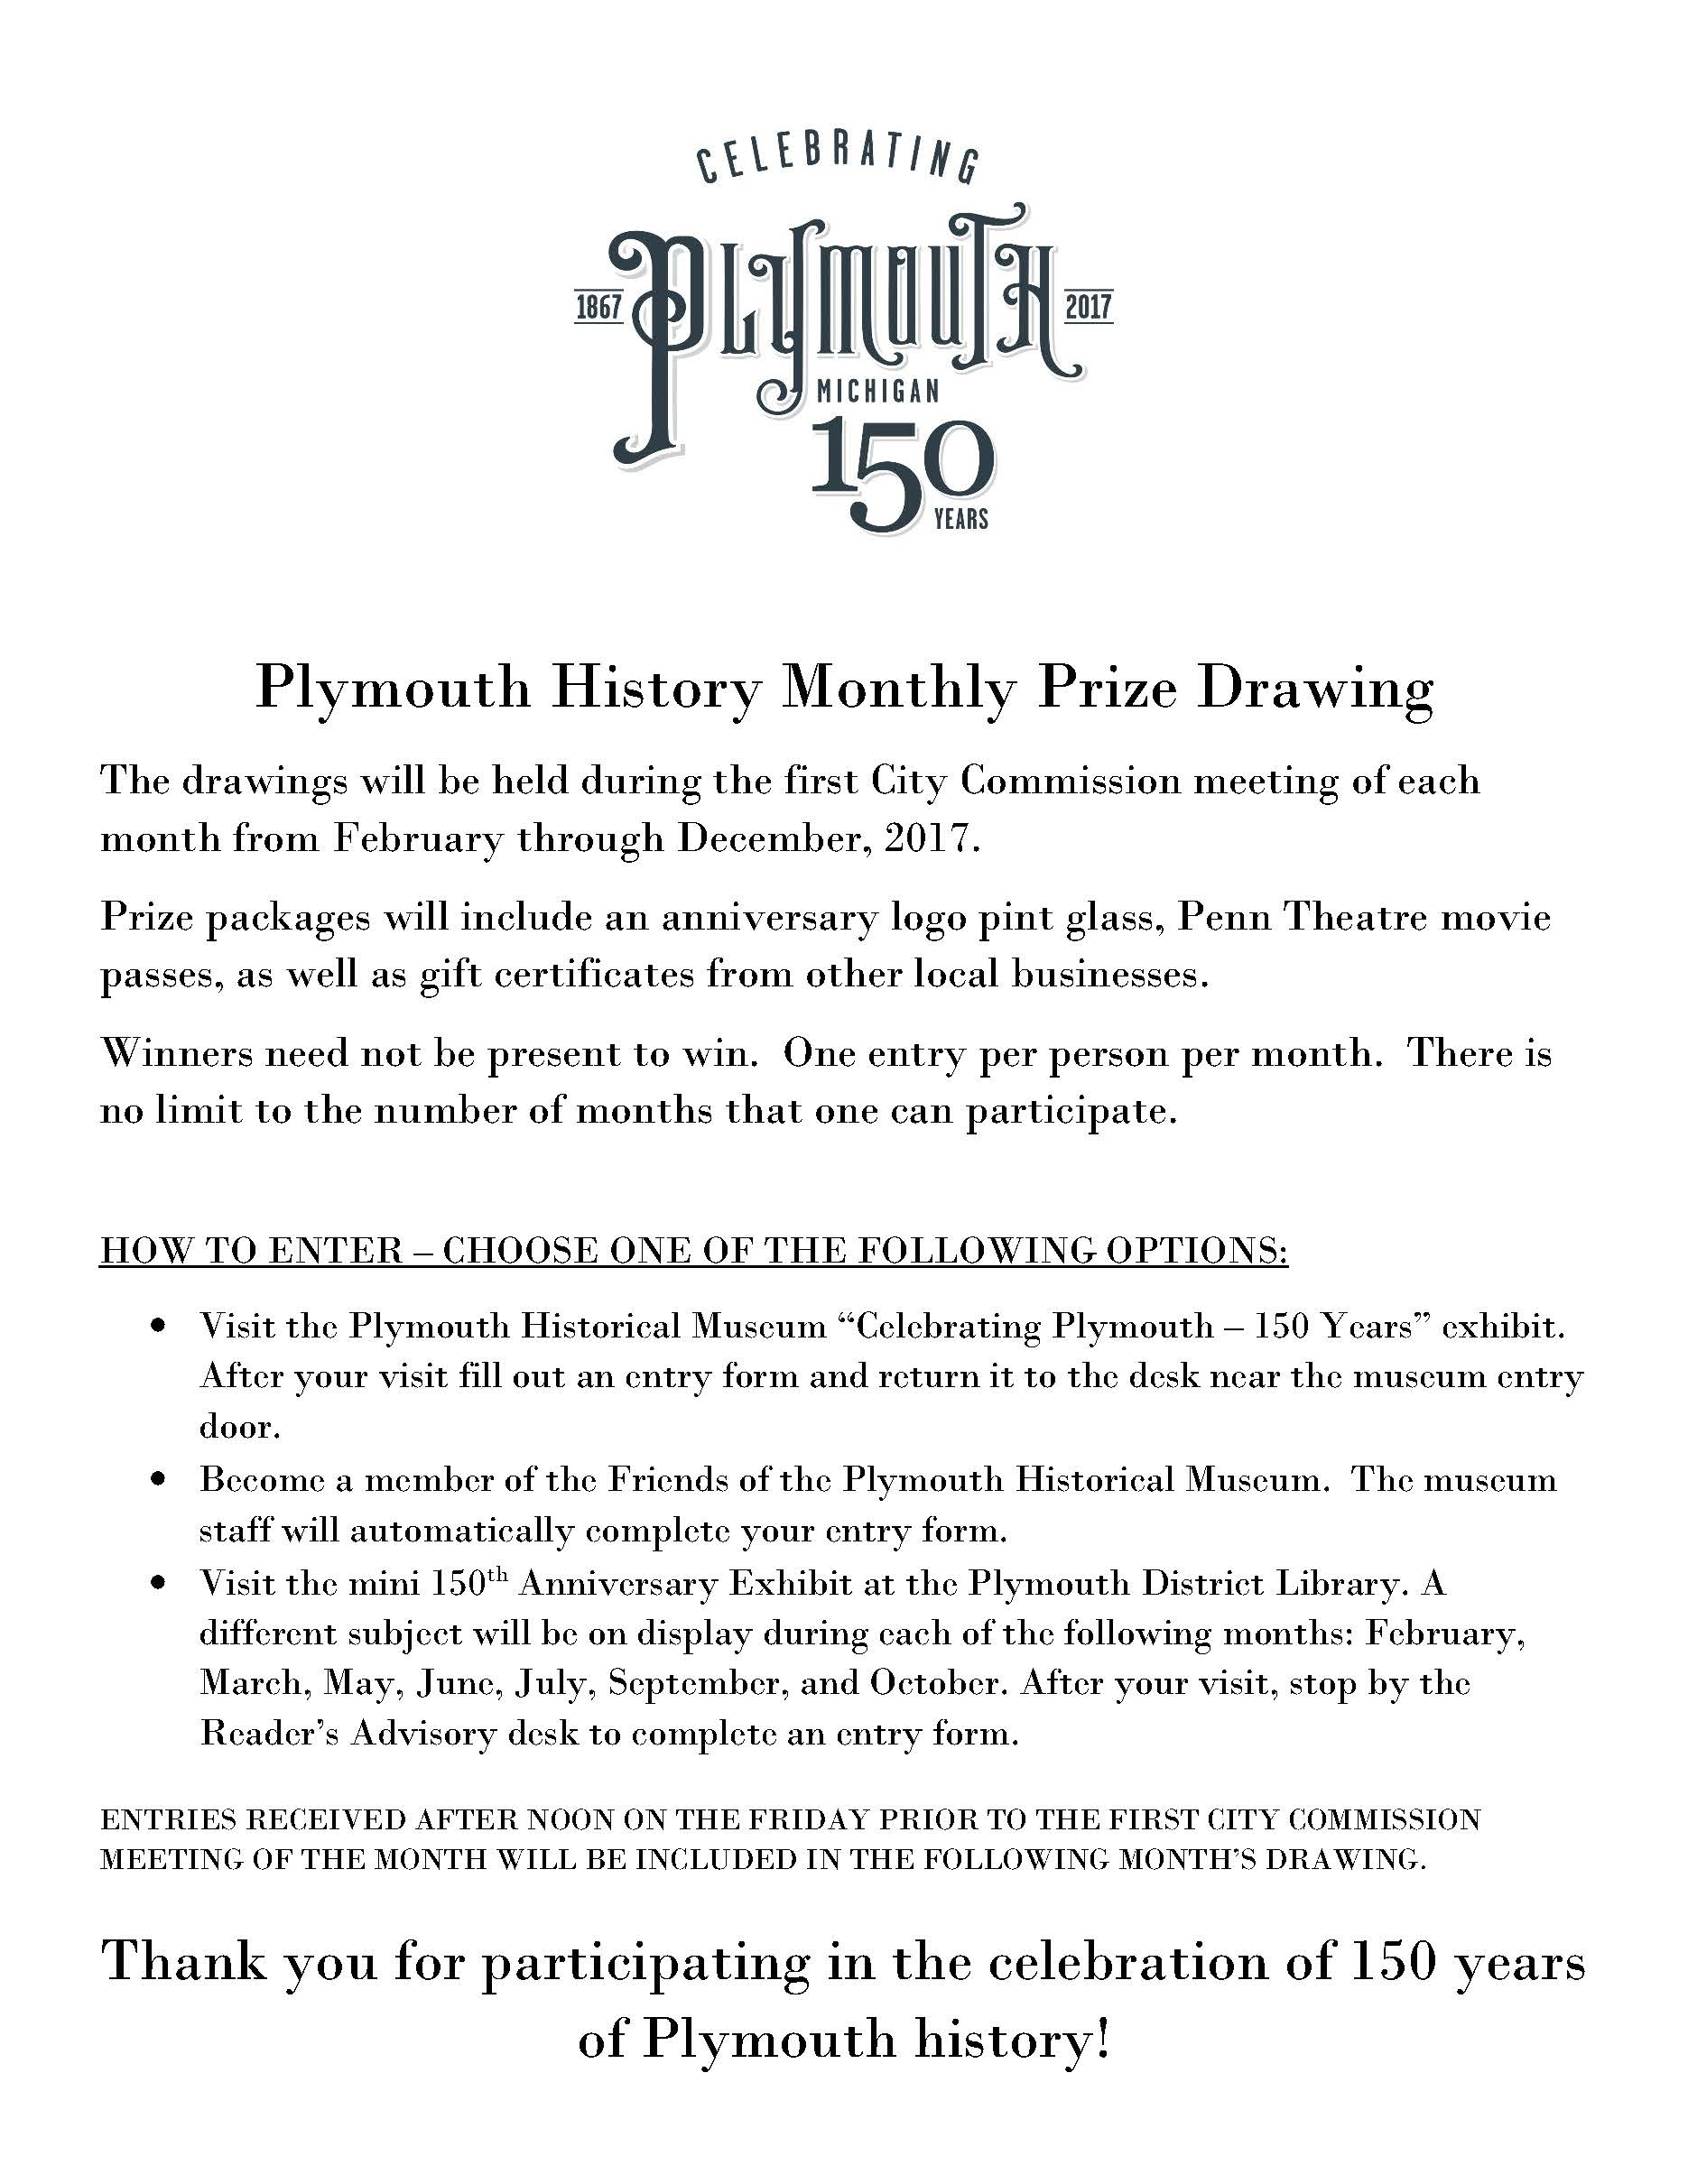 Plymouth History Prize Drawing Info.jpg